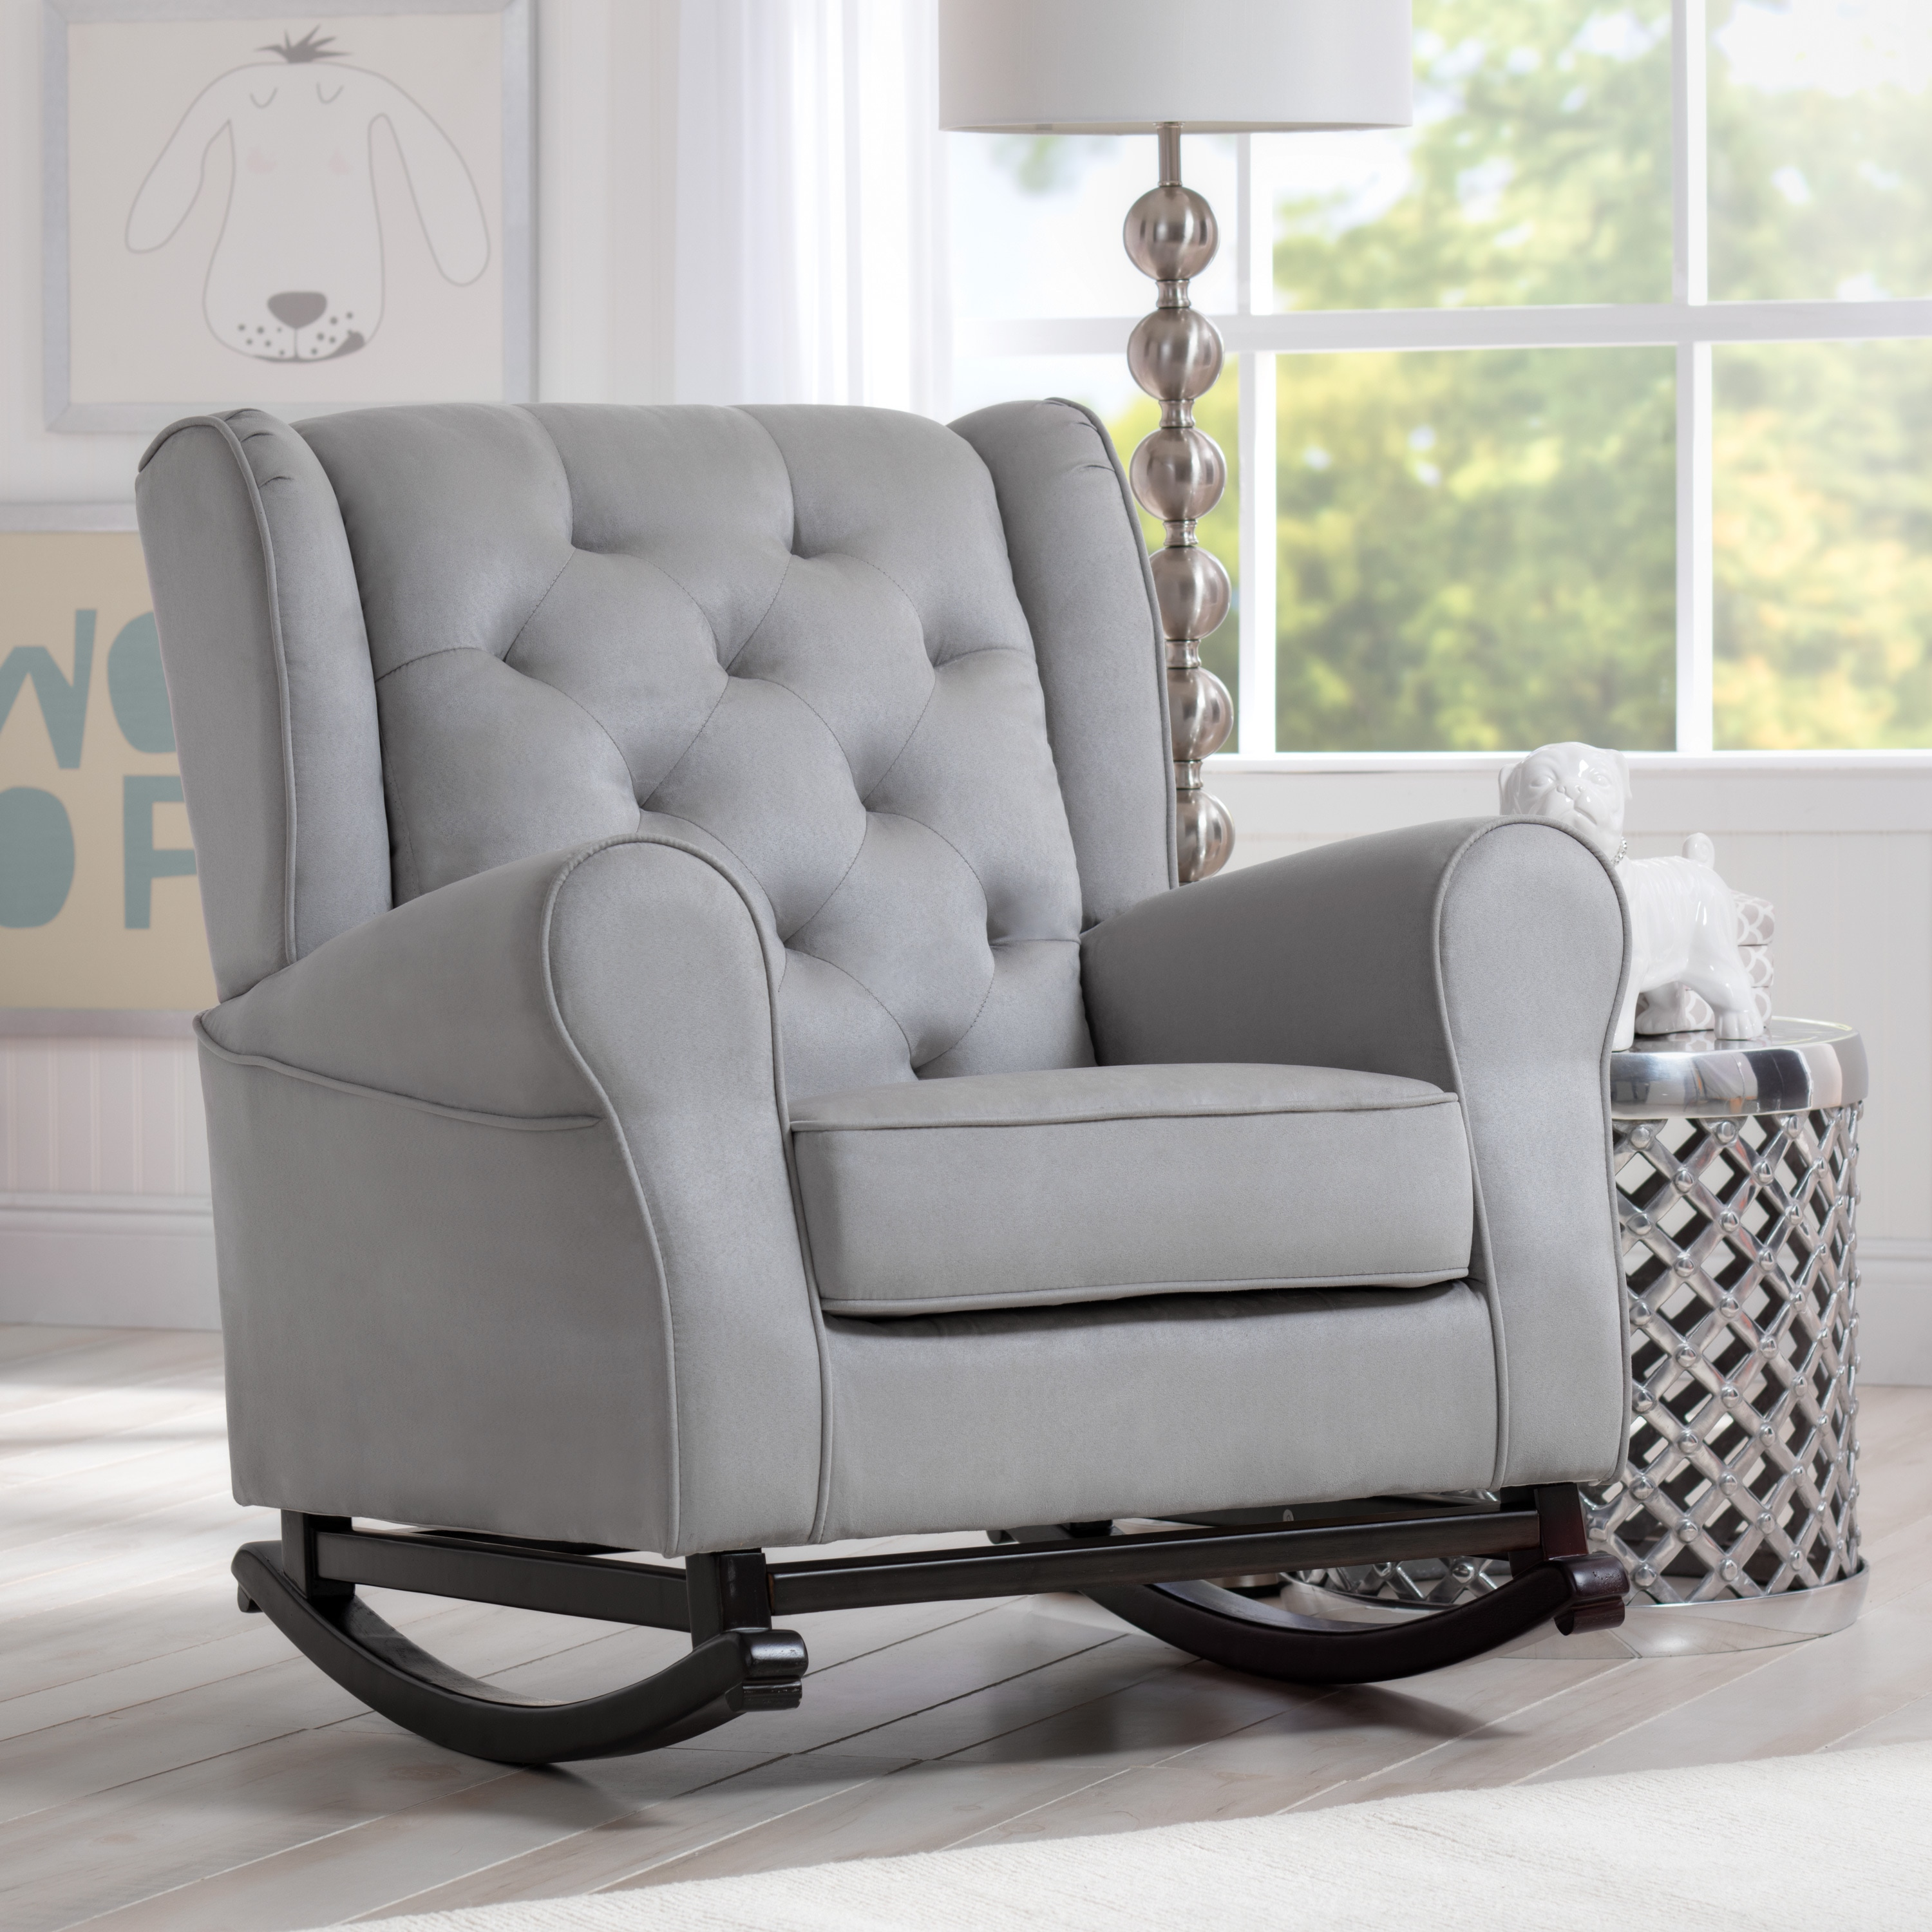 Delta Children Emma Nursery Rocking Chair Dove Grey Free Shipping Today 15020070